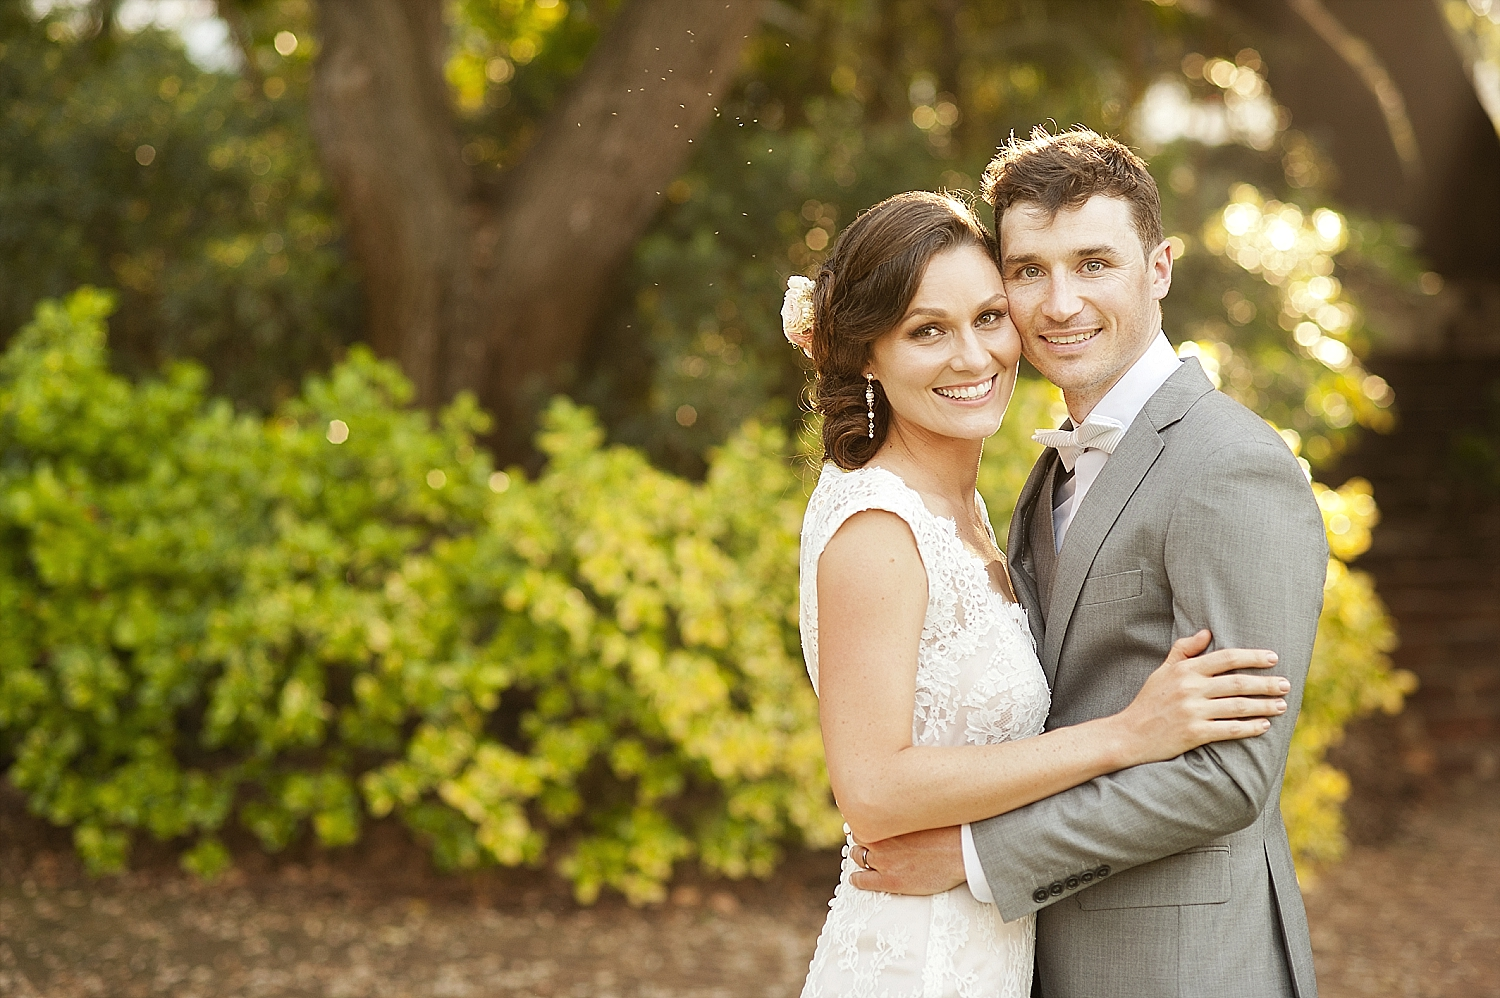 69 relaxed wedding photography perth 083.jpg